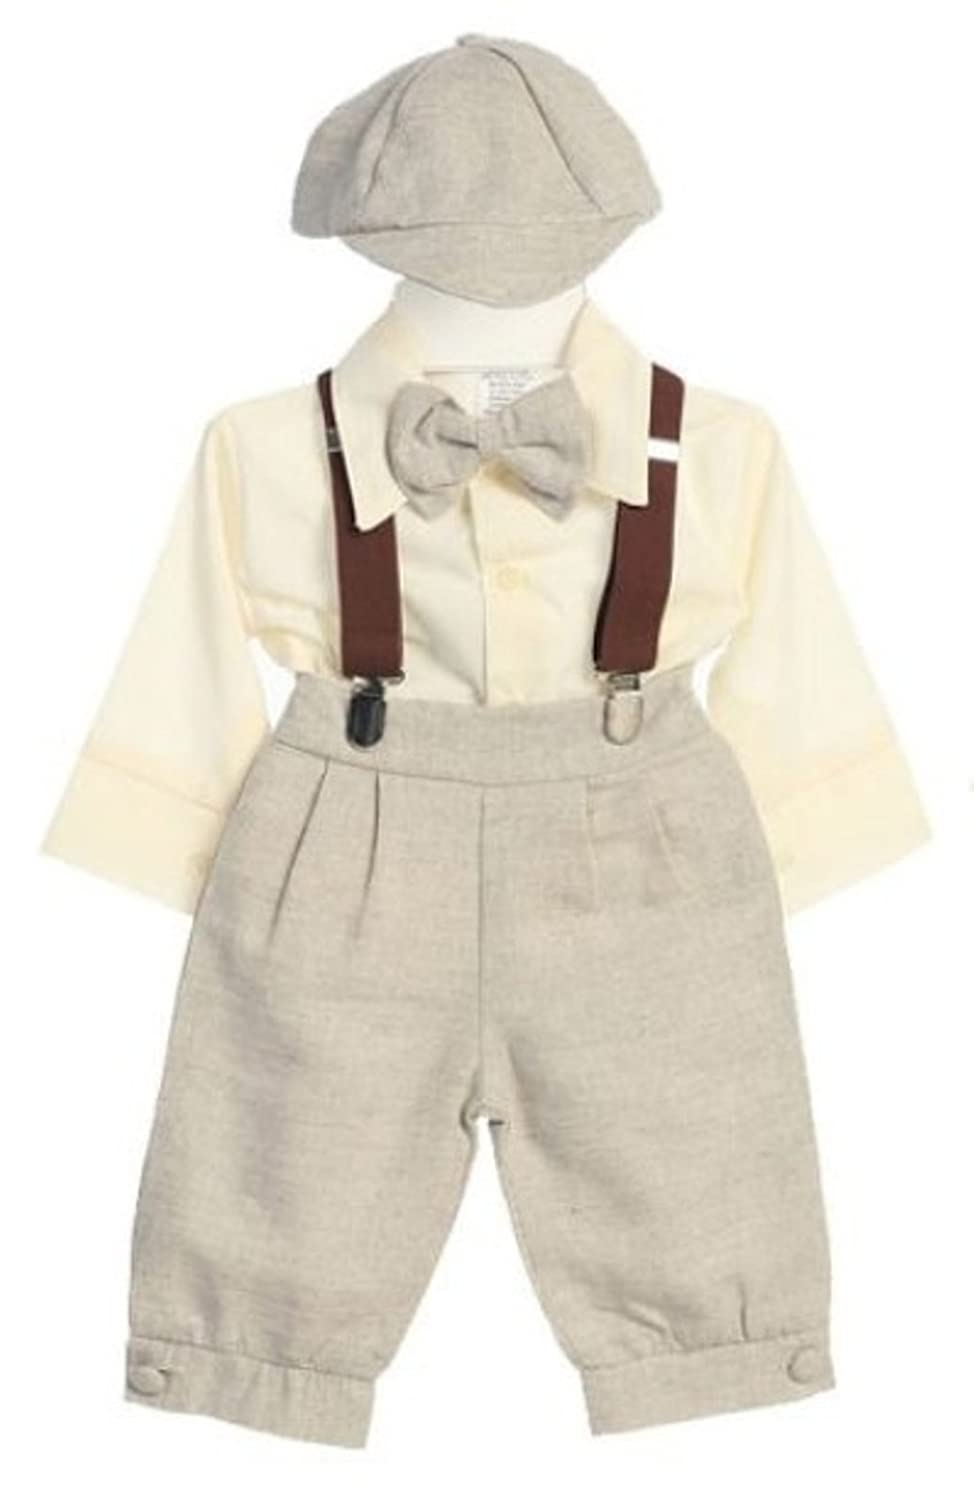 9 Months Infant and Toddler Linen Solid Tan 5 Piece Knicker Set